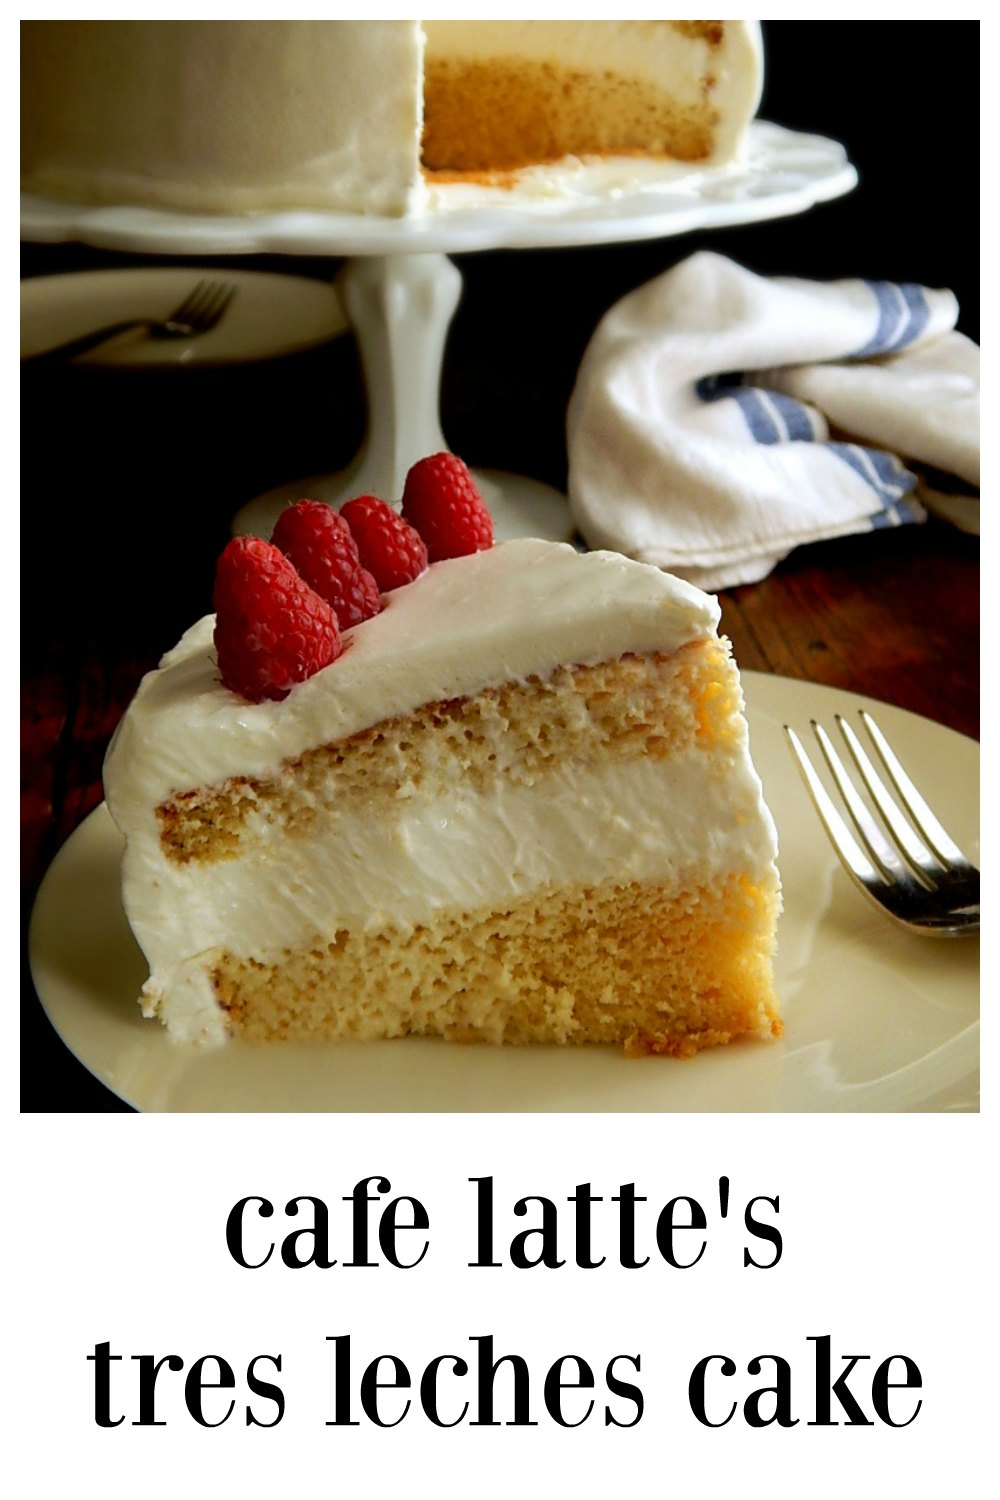 Cafe Latte's Tres Leches Cake is creamy dreamy perfection. Simple, stunning & a great cake for Cinco de Mayo, Easter or any celebration. Cafe Latte is a Twin Cities institution! #TresLechesCake #CafeLatteTresLeches